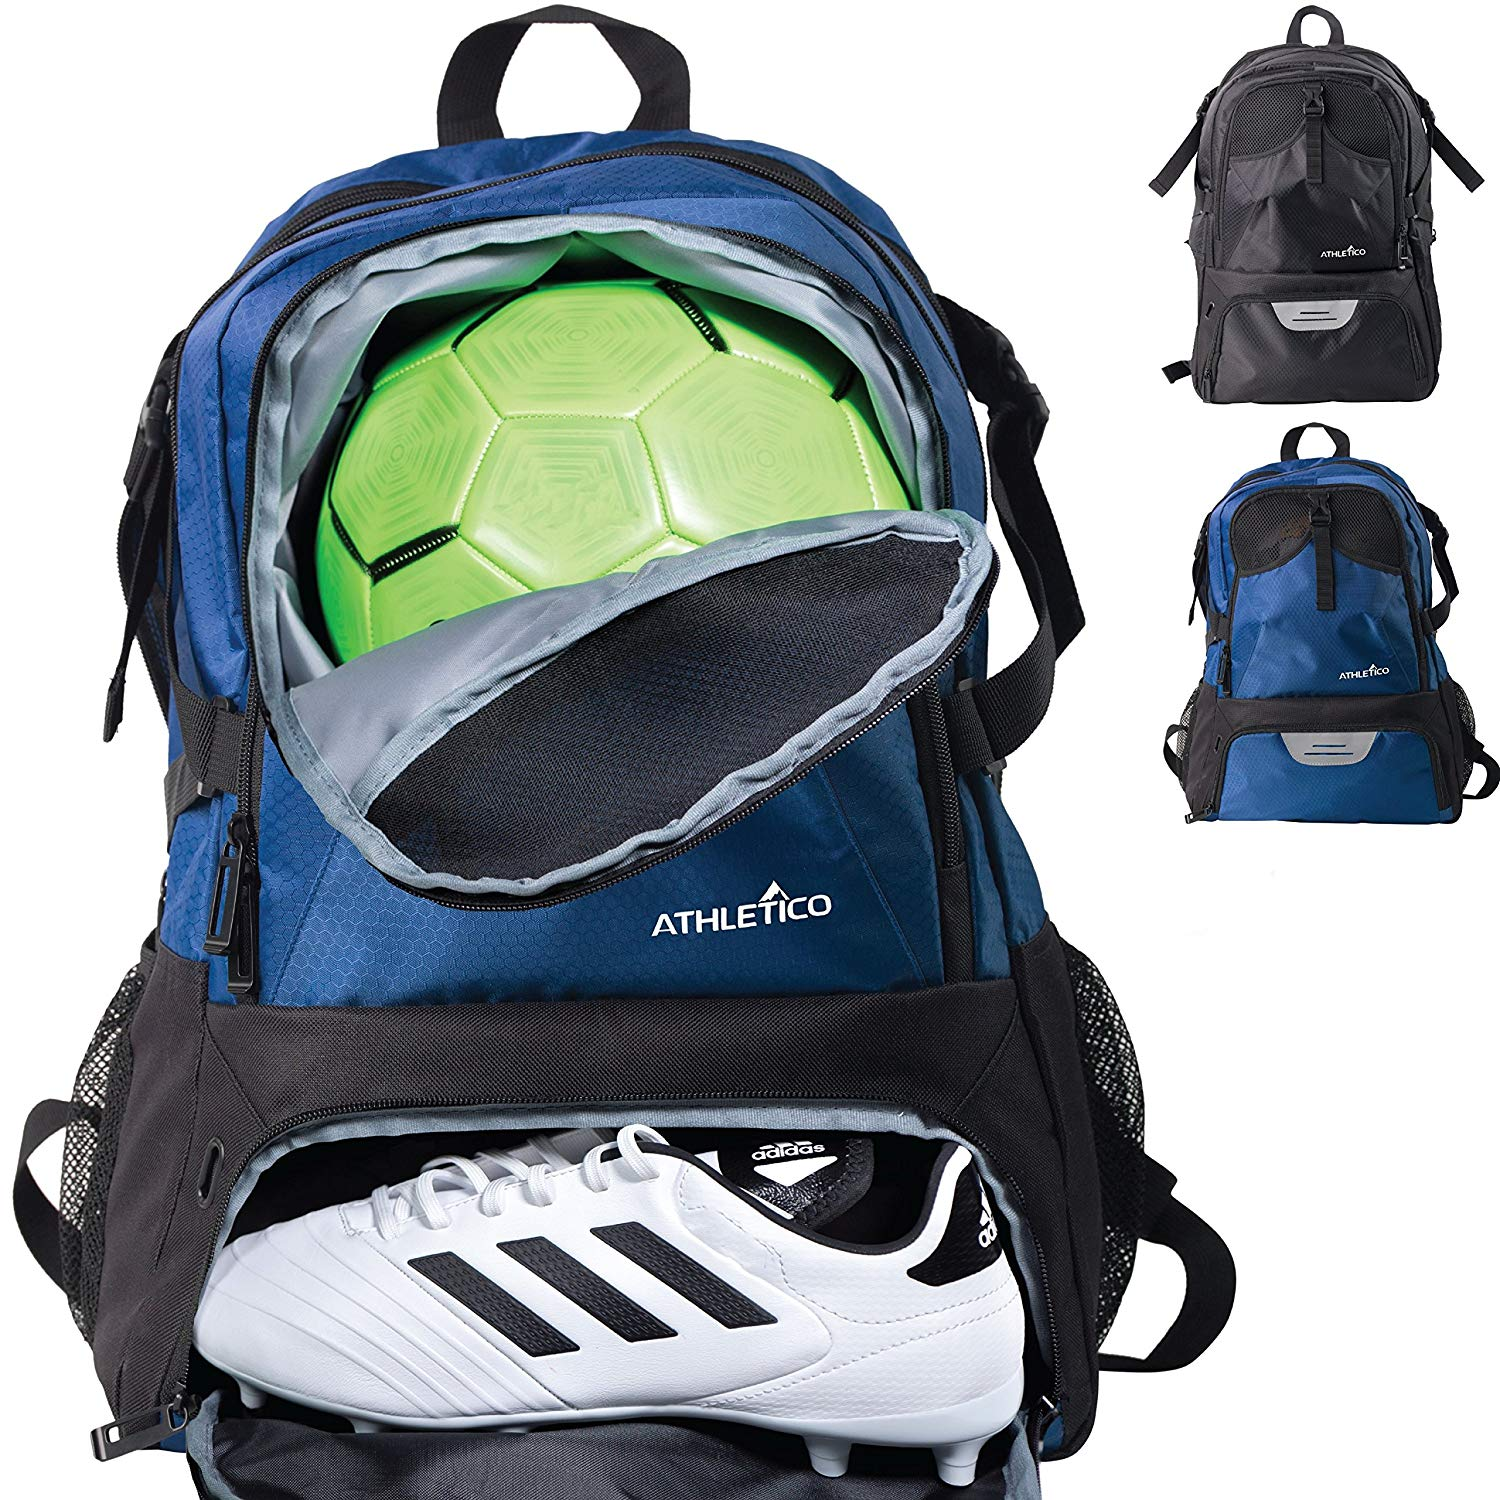 Athletico national soccer bag – backpack for soccer, basketball & football includes separate cleat and ball holder – youth, kids, girls, boys, men & women